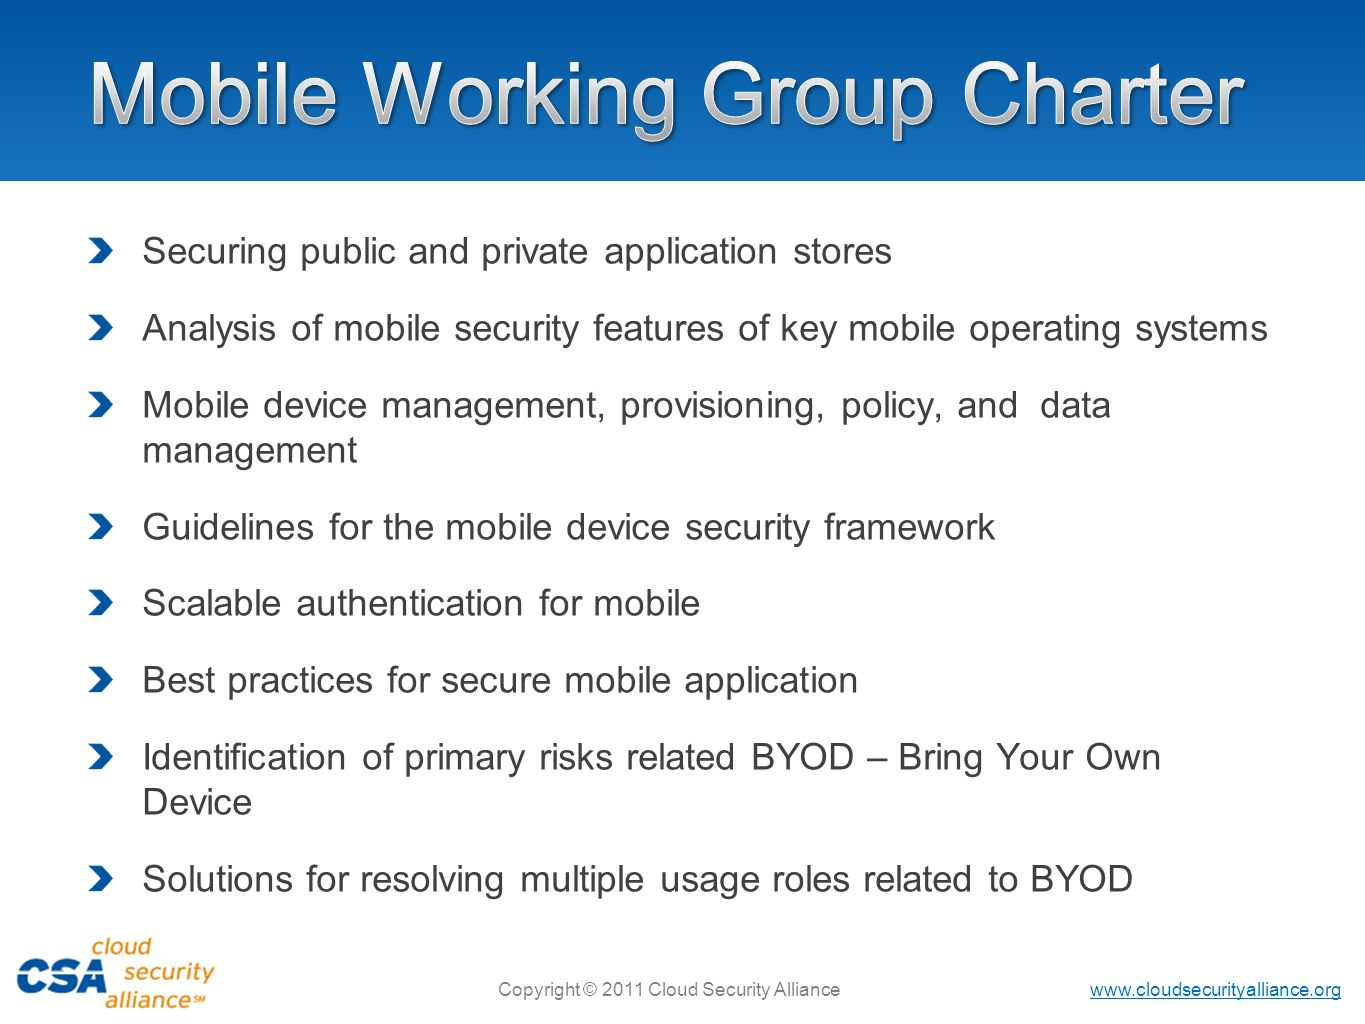 Mobile Working Group Charter